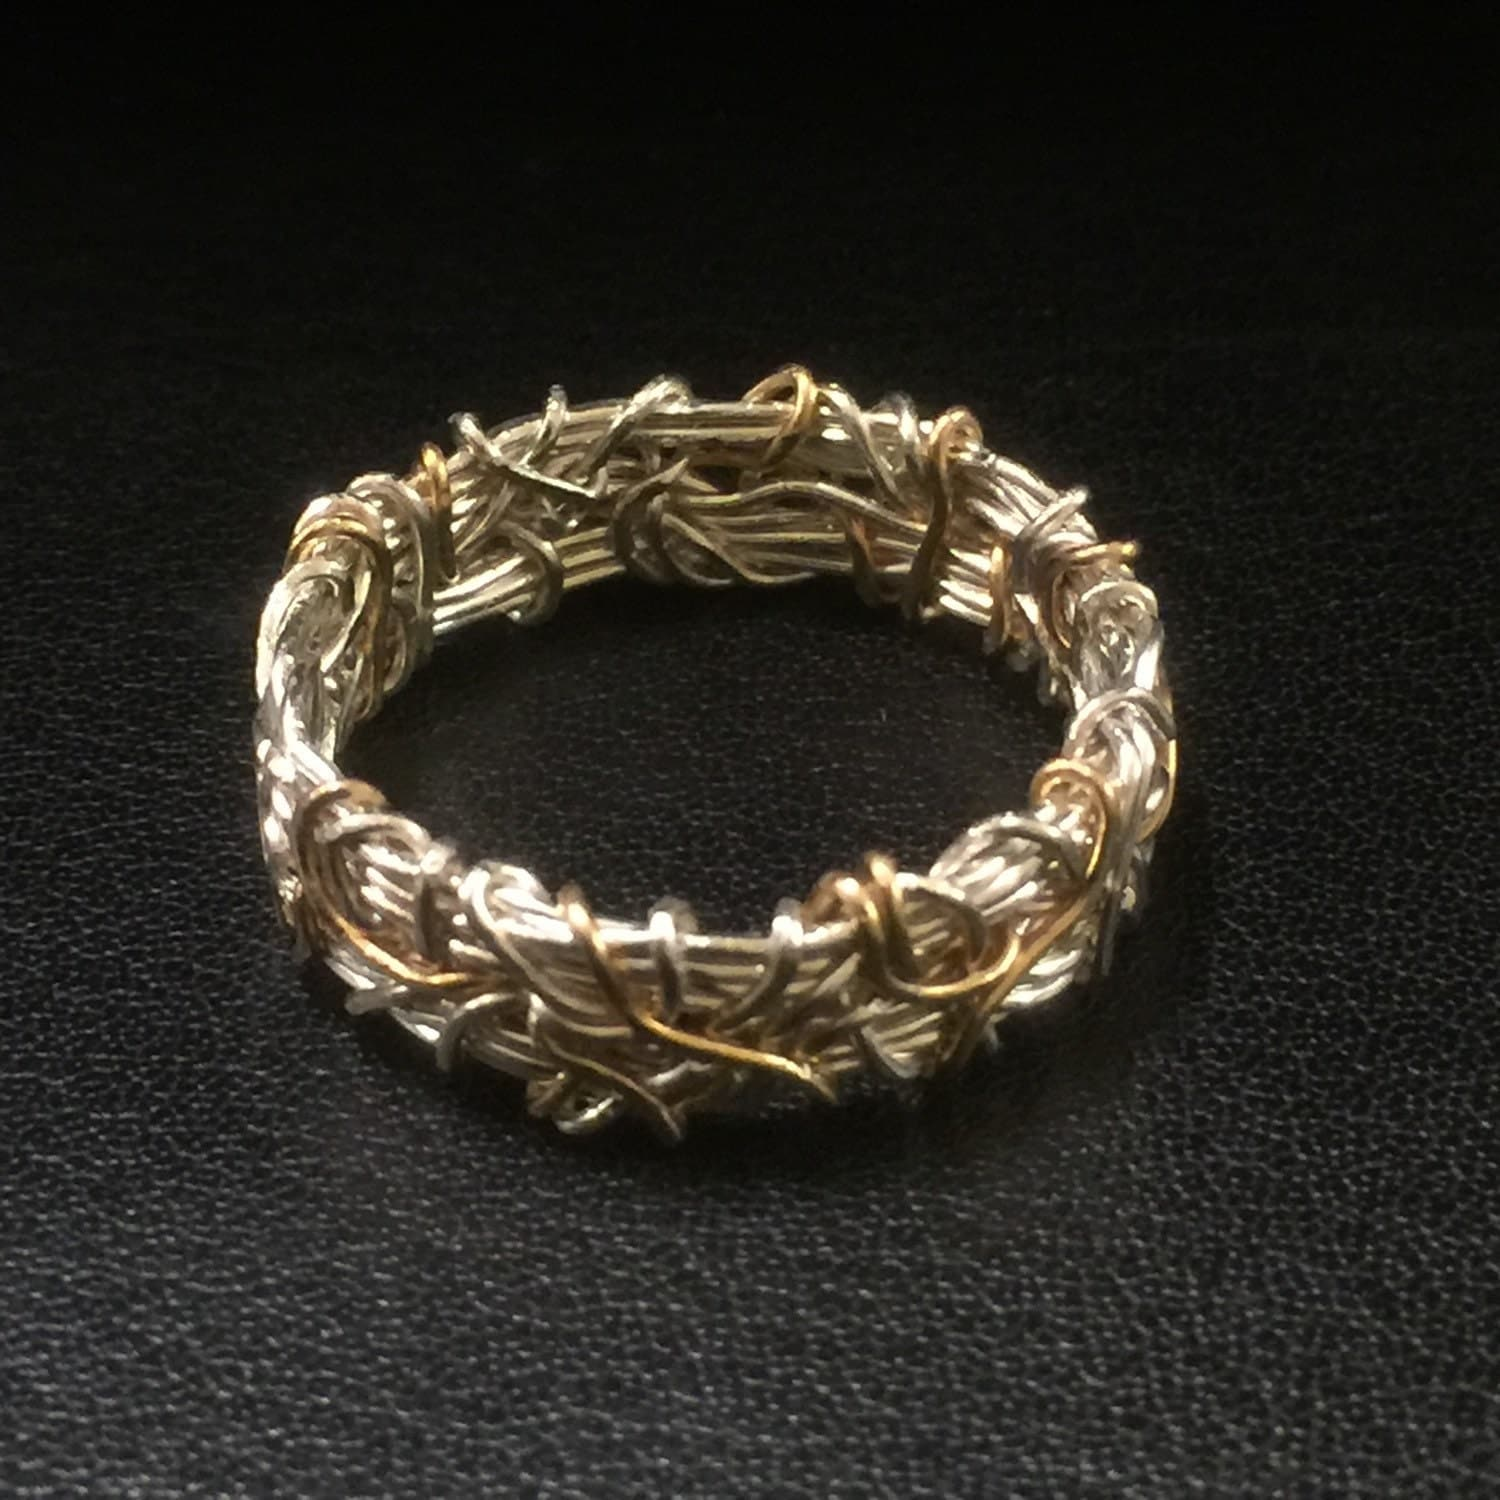 crown of thorns 14k wedding band coiled wedding band gold